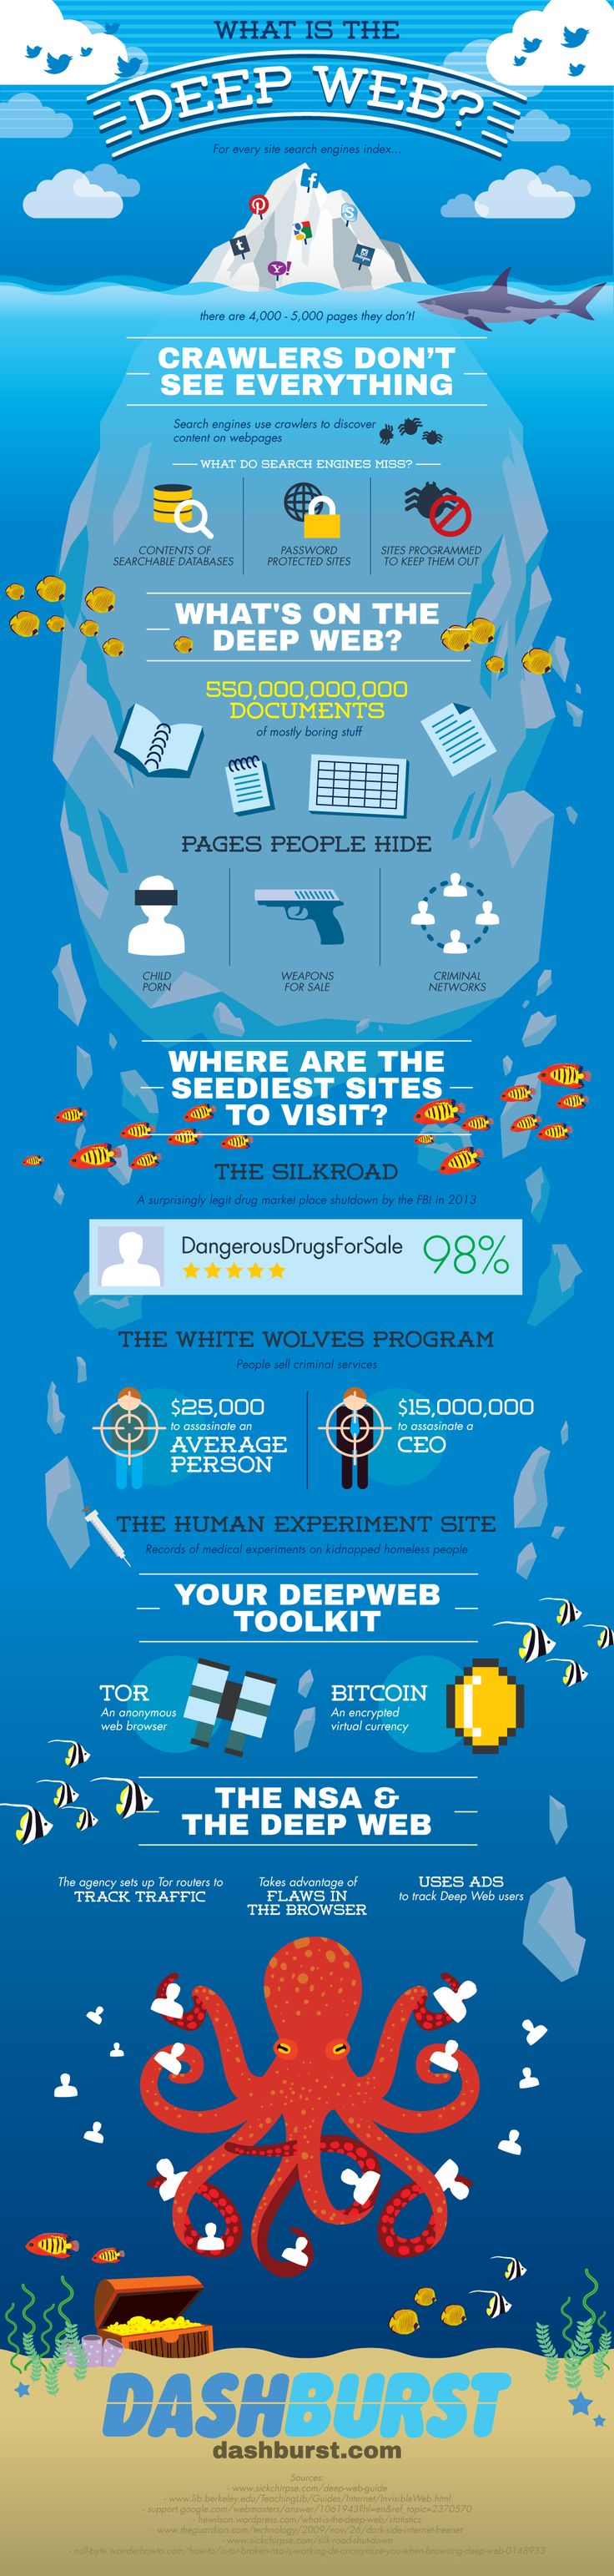 What Is the Deep Web? [INFOGRAPHIC] http://blog.dashburst.com/infographic/what-is-the-deep-web/